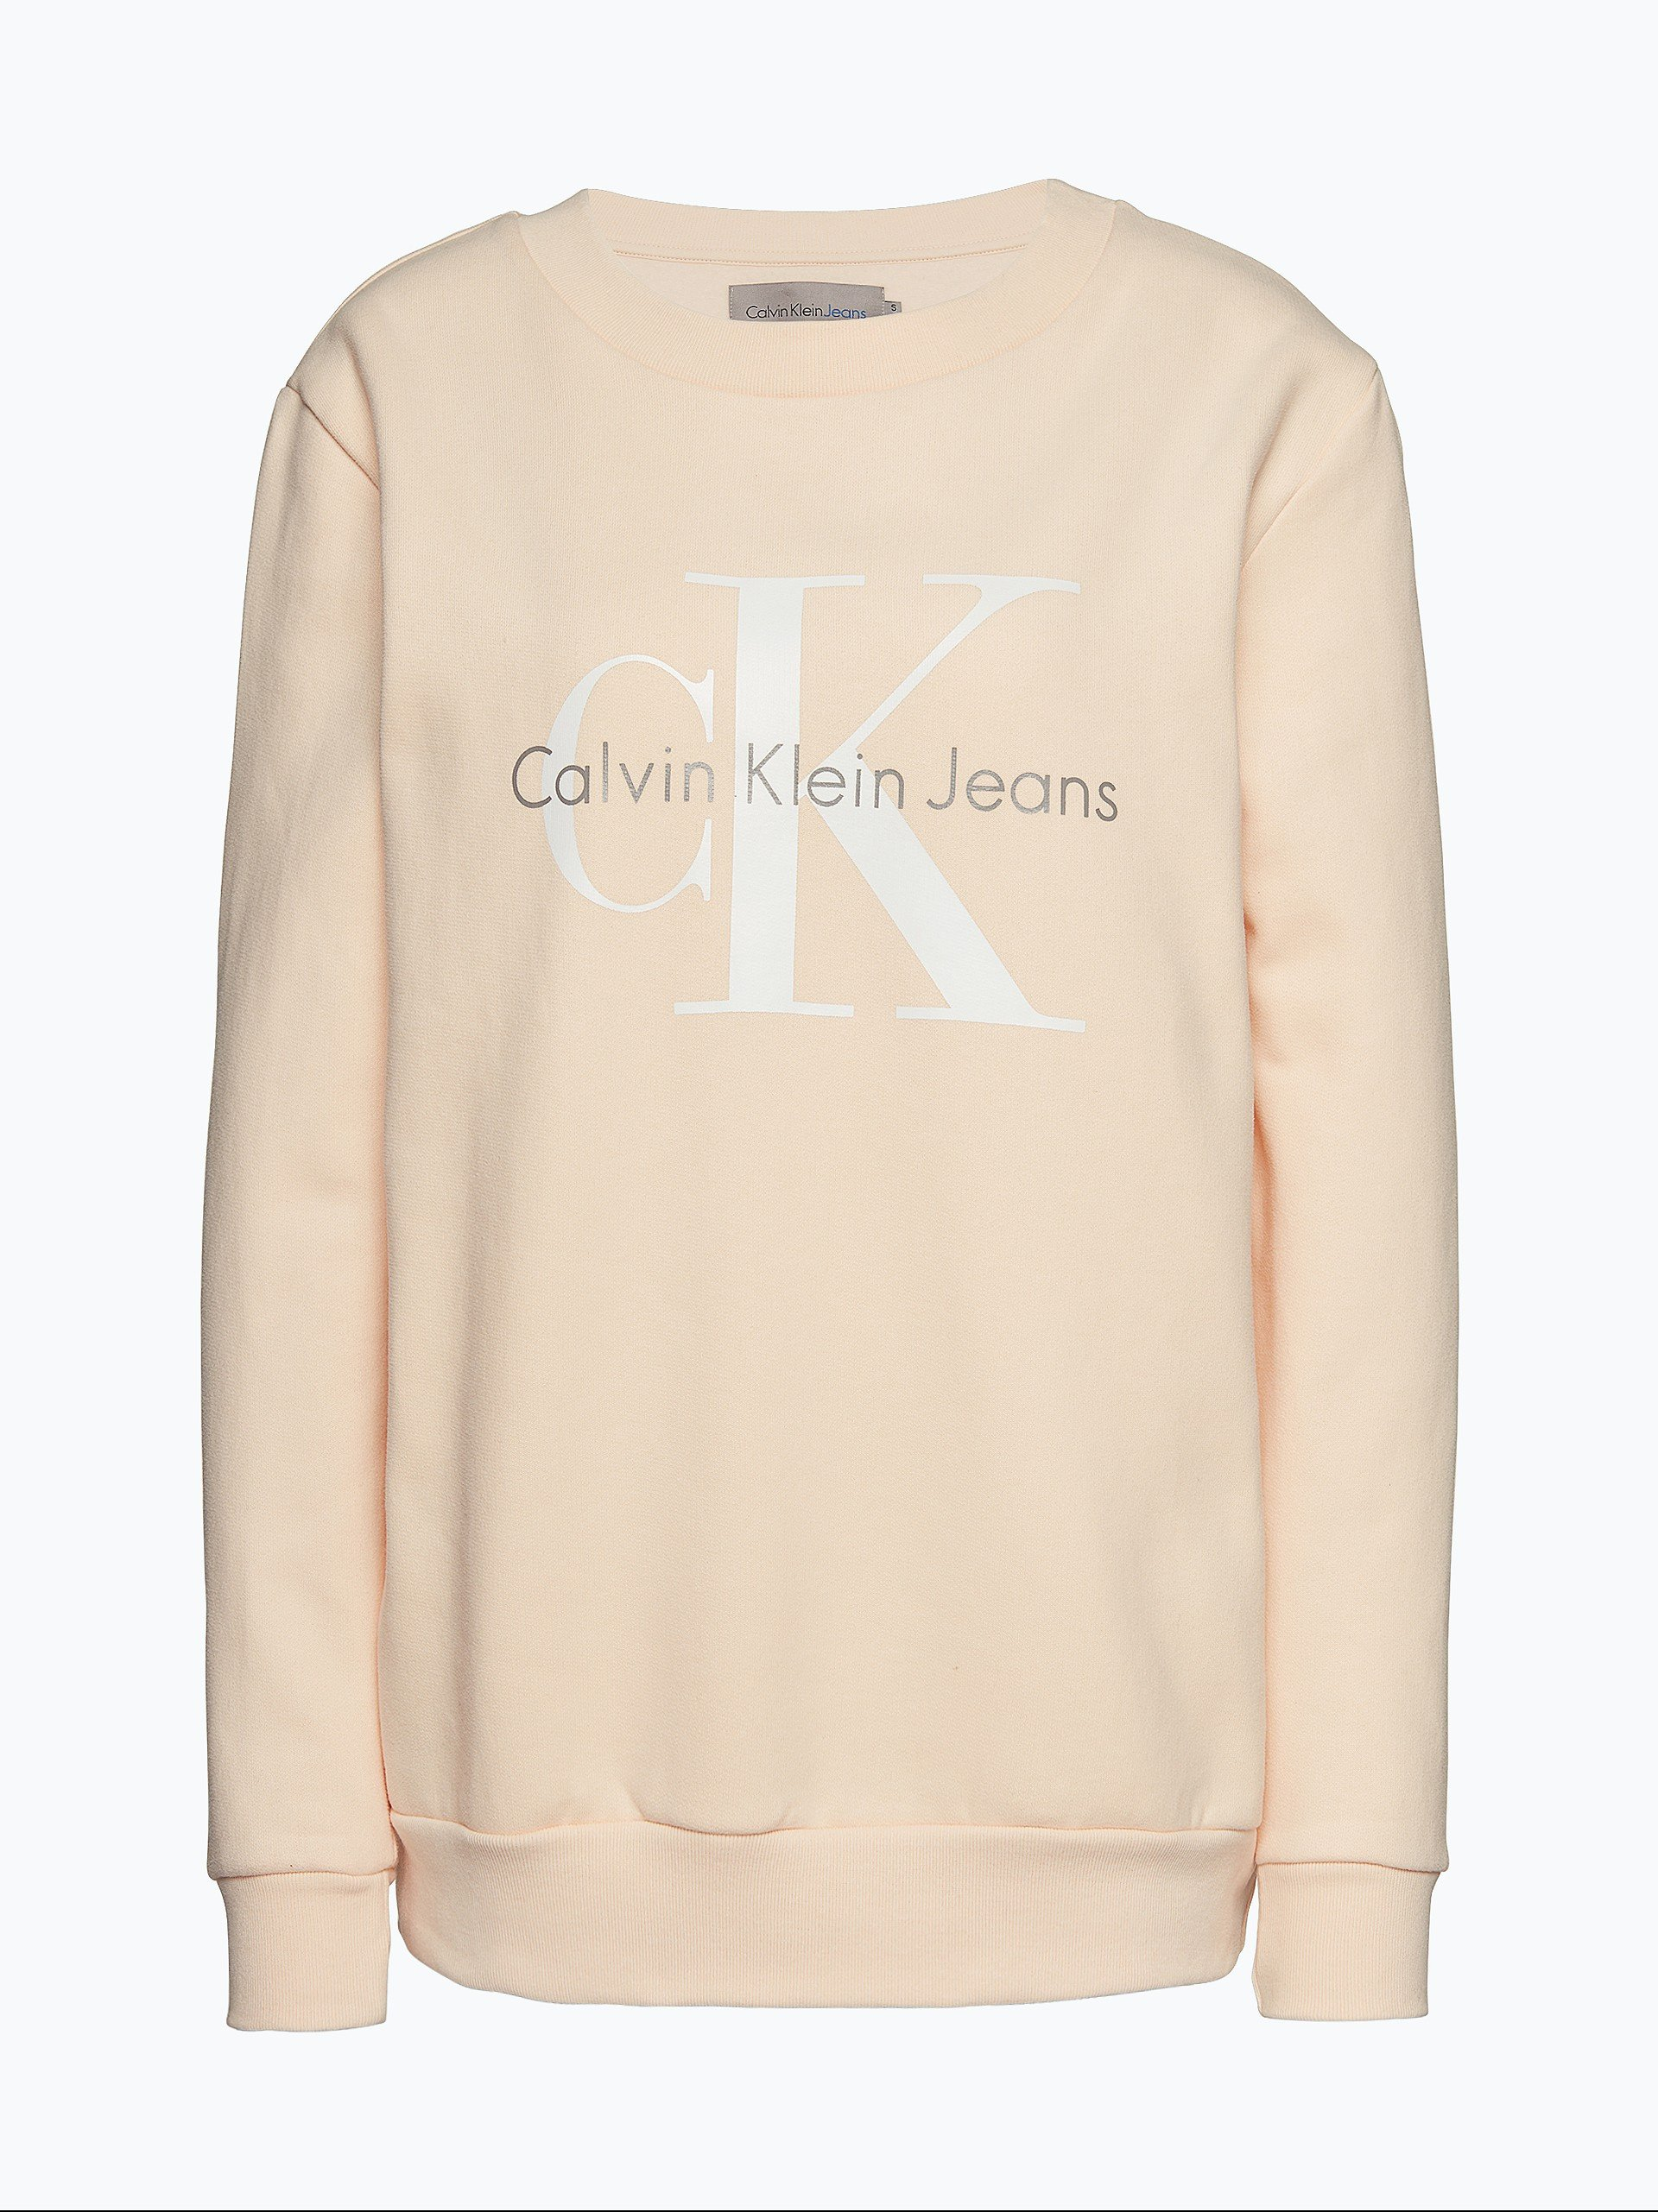 calvin klein jeans damen sweatshirt vanille uni online. Black Bedroom Furniture Sets. Home Design Ideas